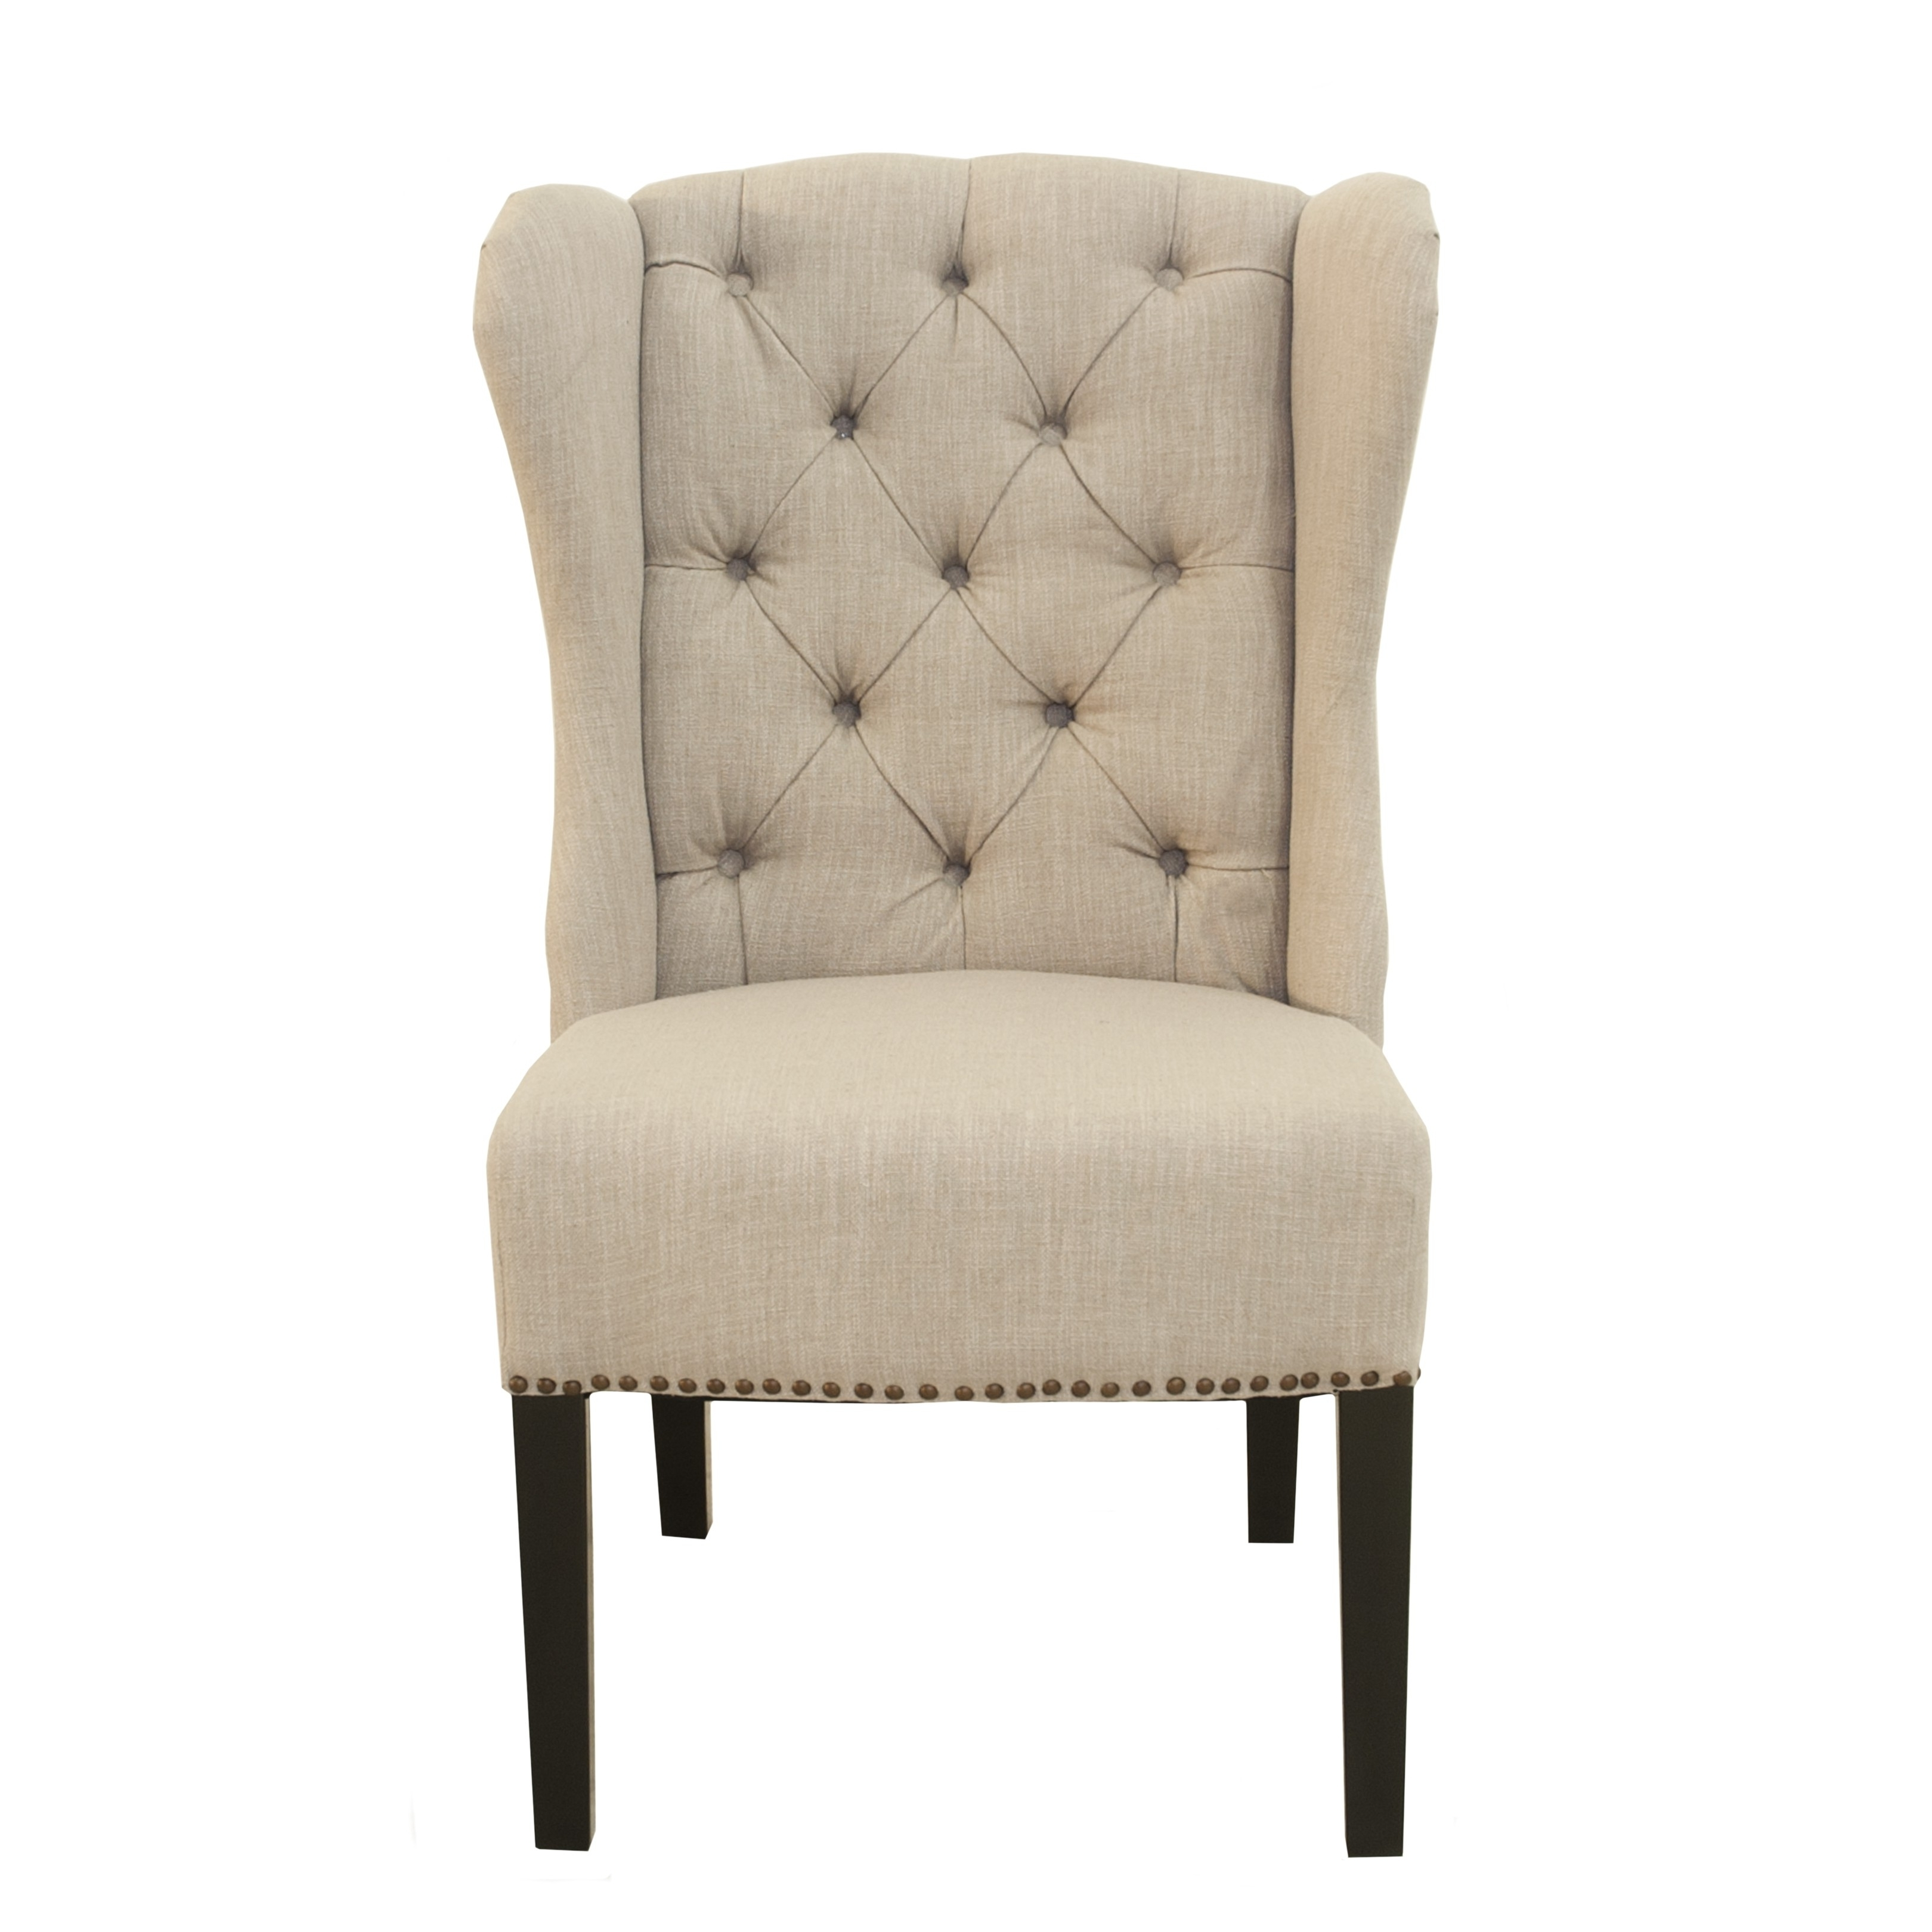 Dining Sofa Chairs With Regard To Popular Wingback Dining Inspirations Including Room Chairs Pictures (Gallery 13 of 20)